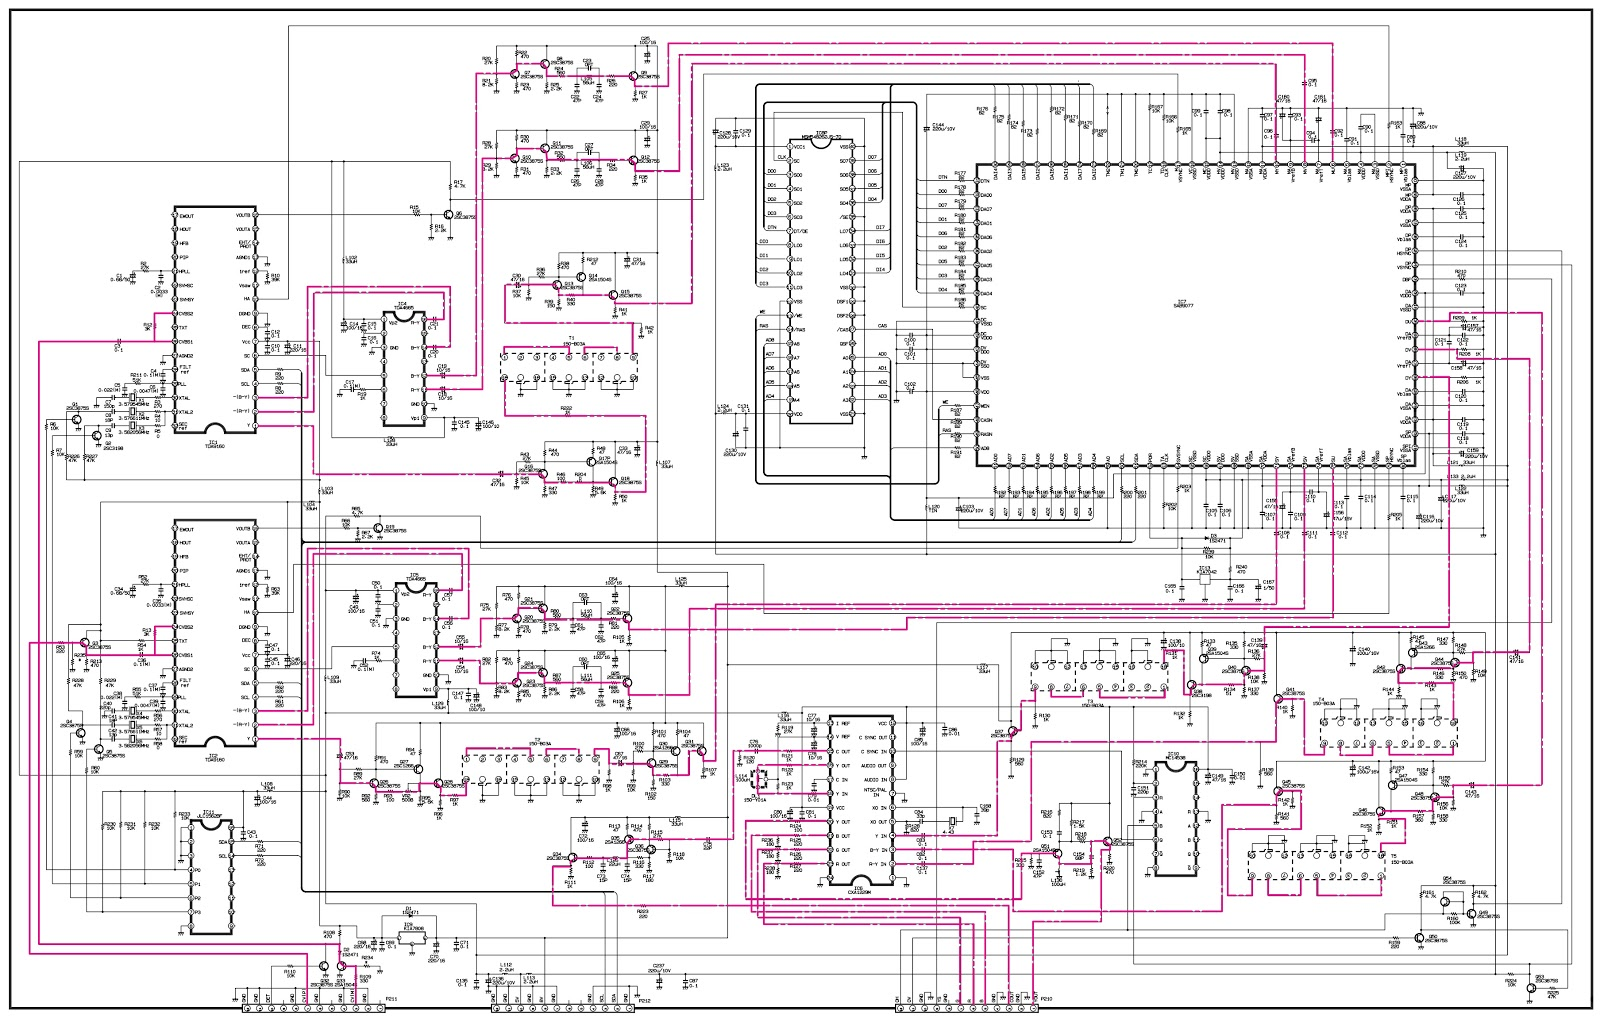 lg ultra slim tv circuit diagram lg image wiring lg tv circuit diagram the wiring diagram on lg ultra slim tv circuit diagram